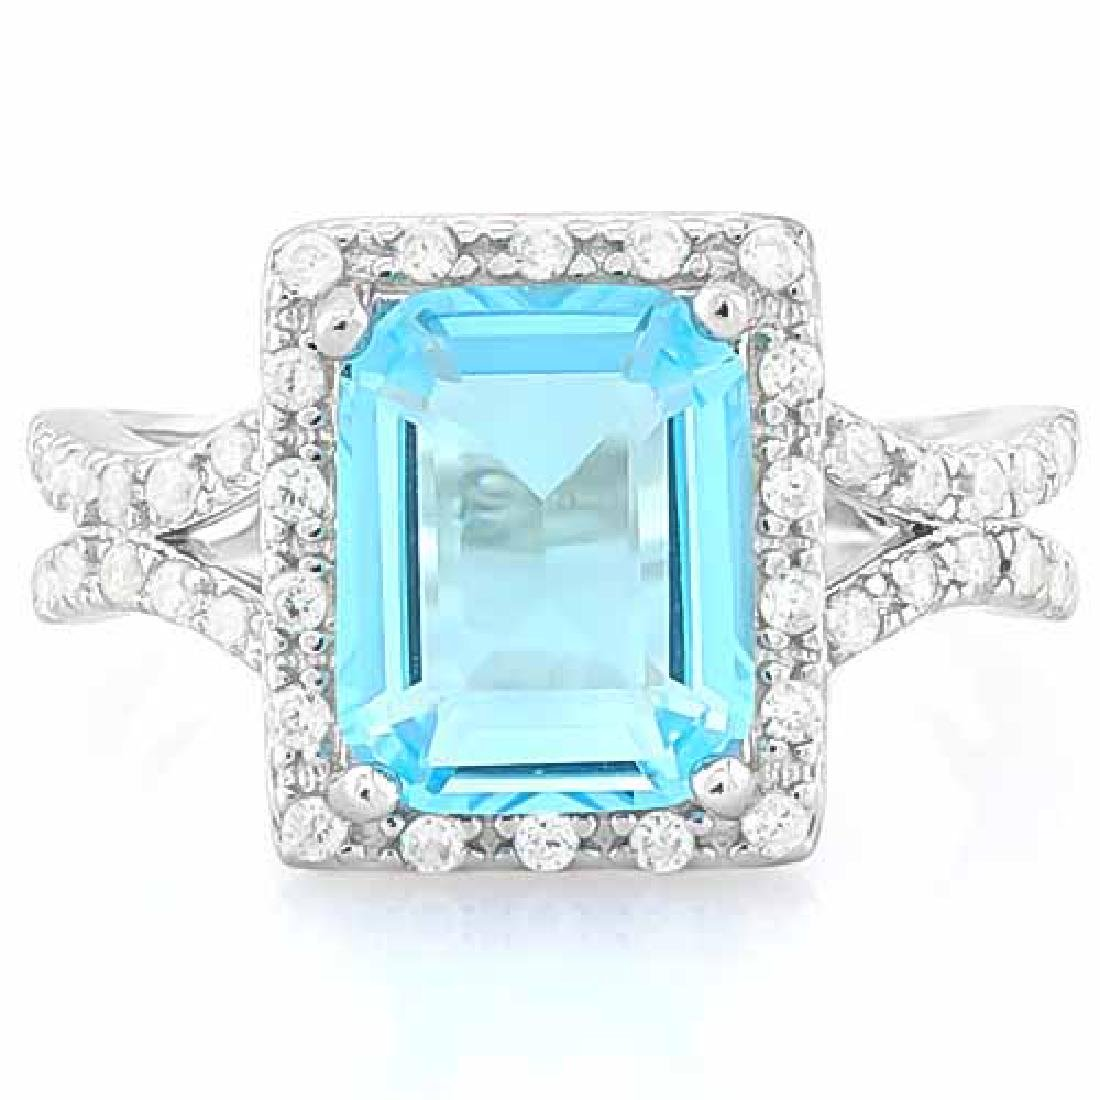 4 CARAT CREATED BLUE TOPAZ & 3 4/5 CARAT (38 PCS) FLAWL